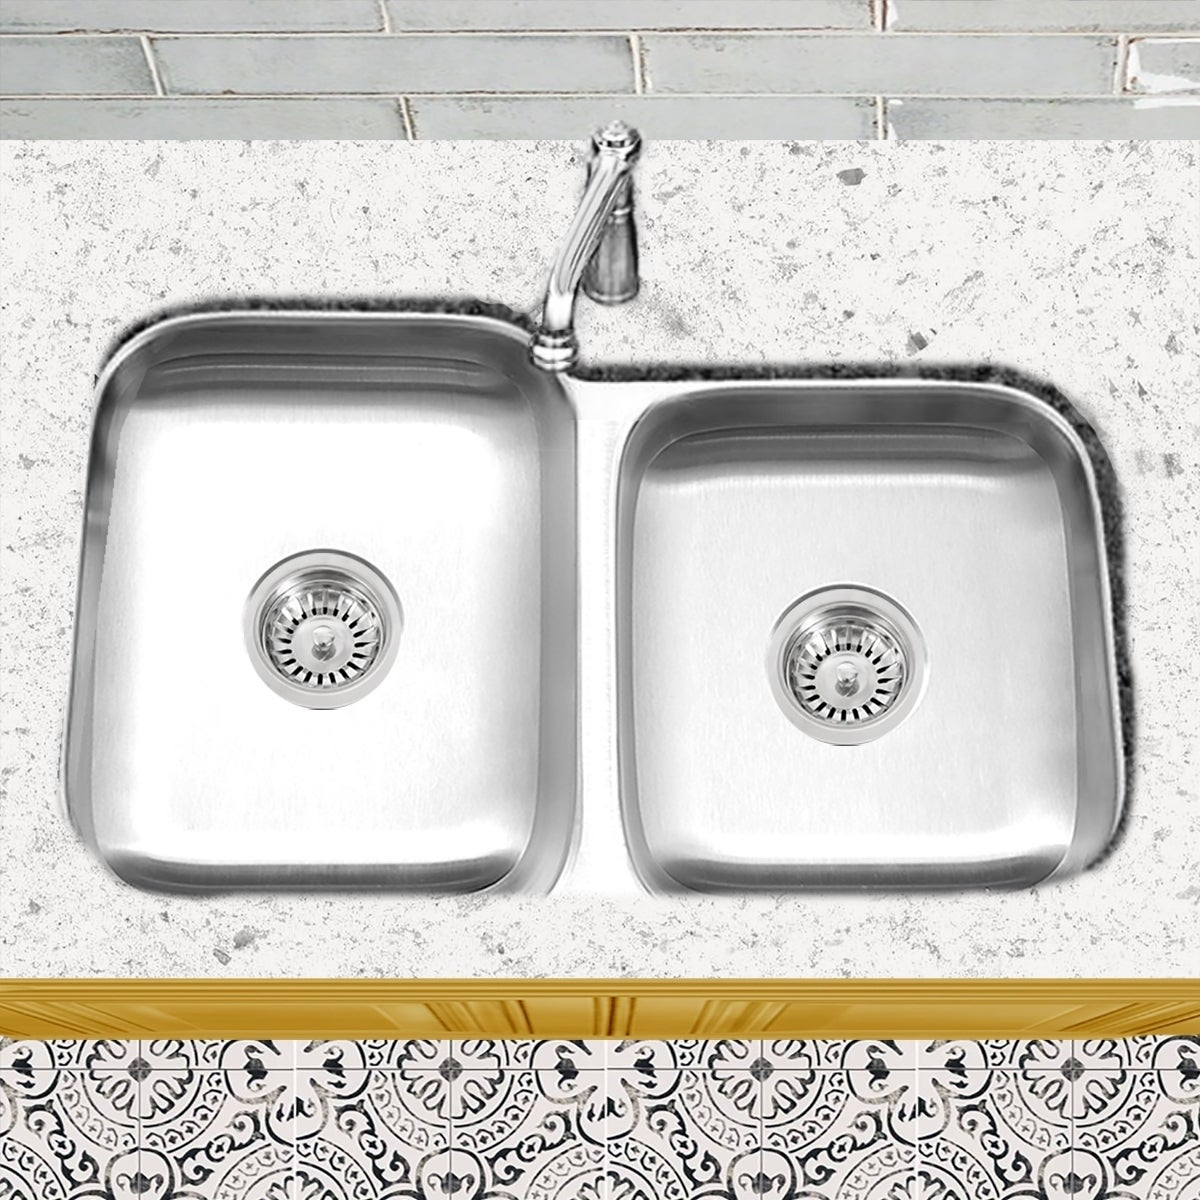 Stainless Steel Offset Double Bowl Kitchen Sink With Drains Silver On Sale Overstock 5763611